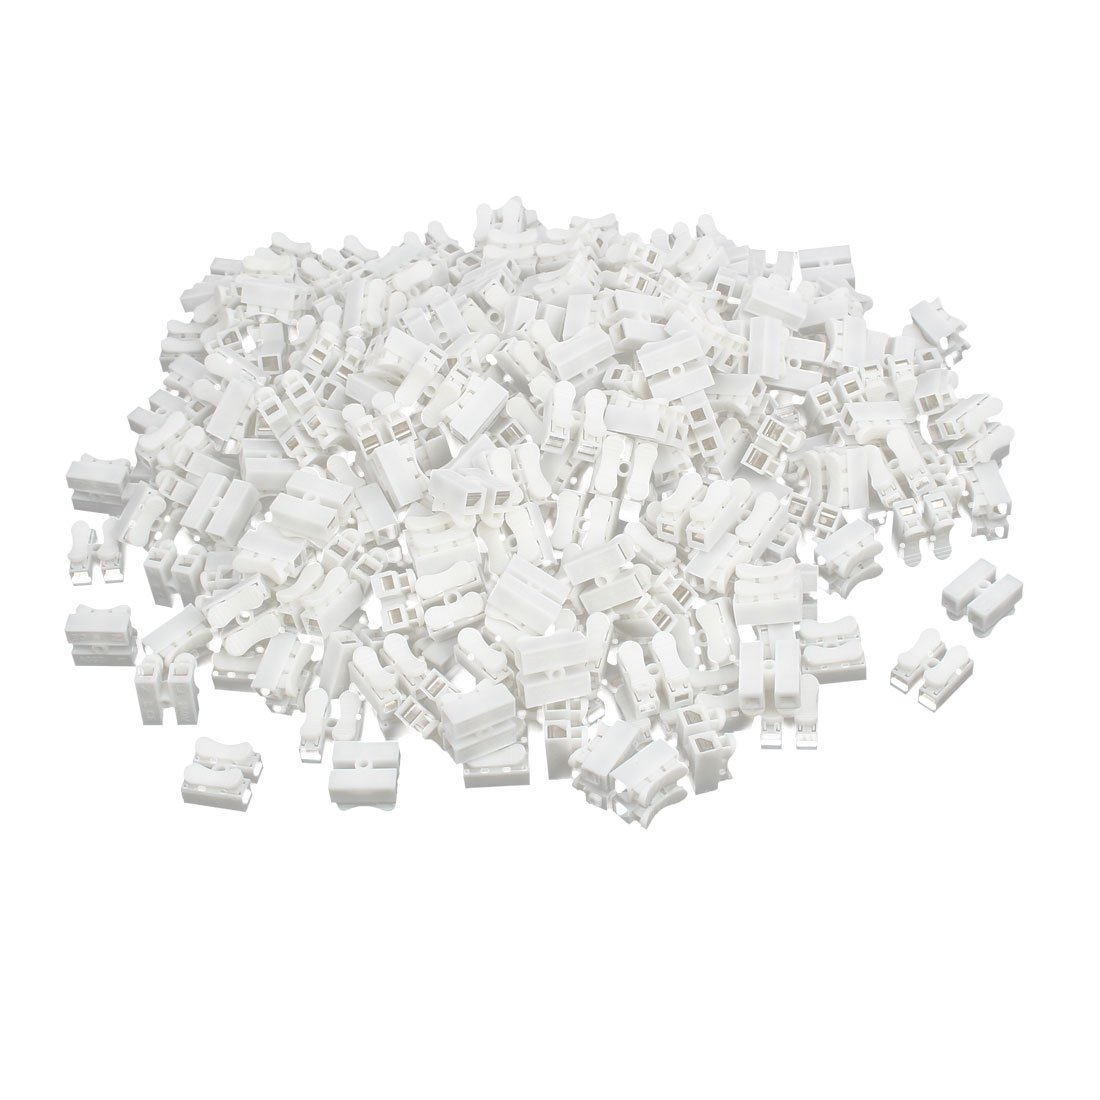 uxcell CH-2 250V 10A 2 Position Spring Clamp Terminal Blocks Quick Connectors 500pcs by uxcell